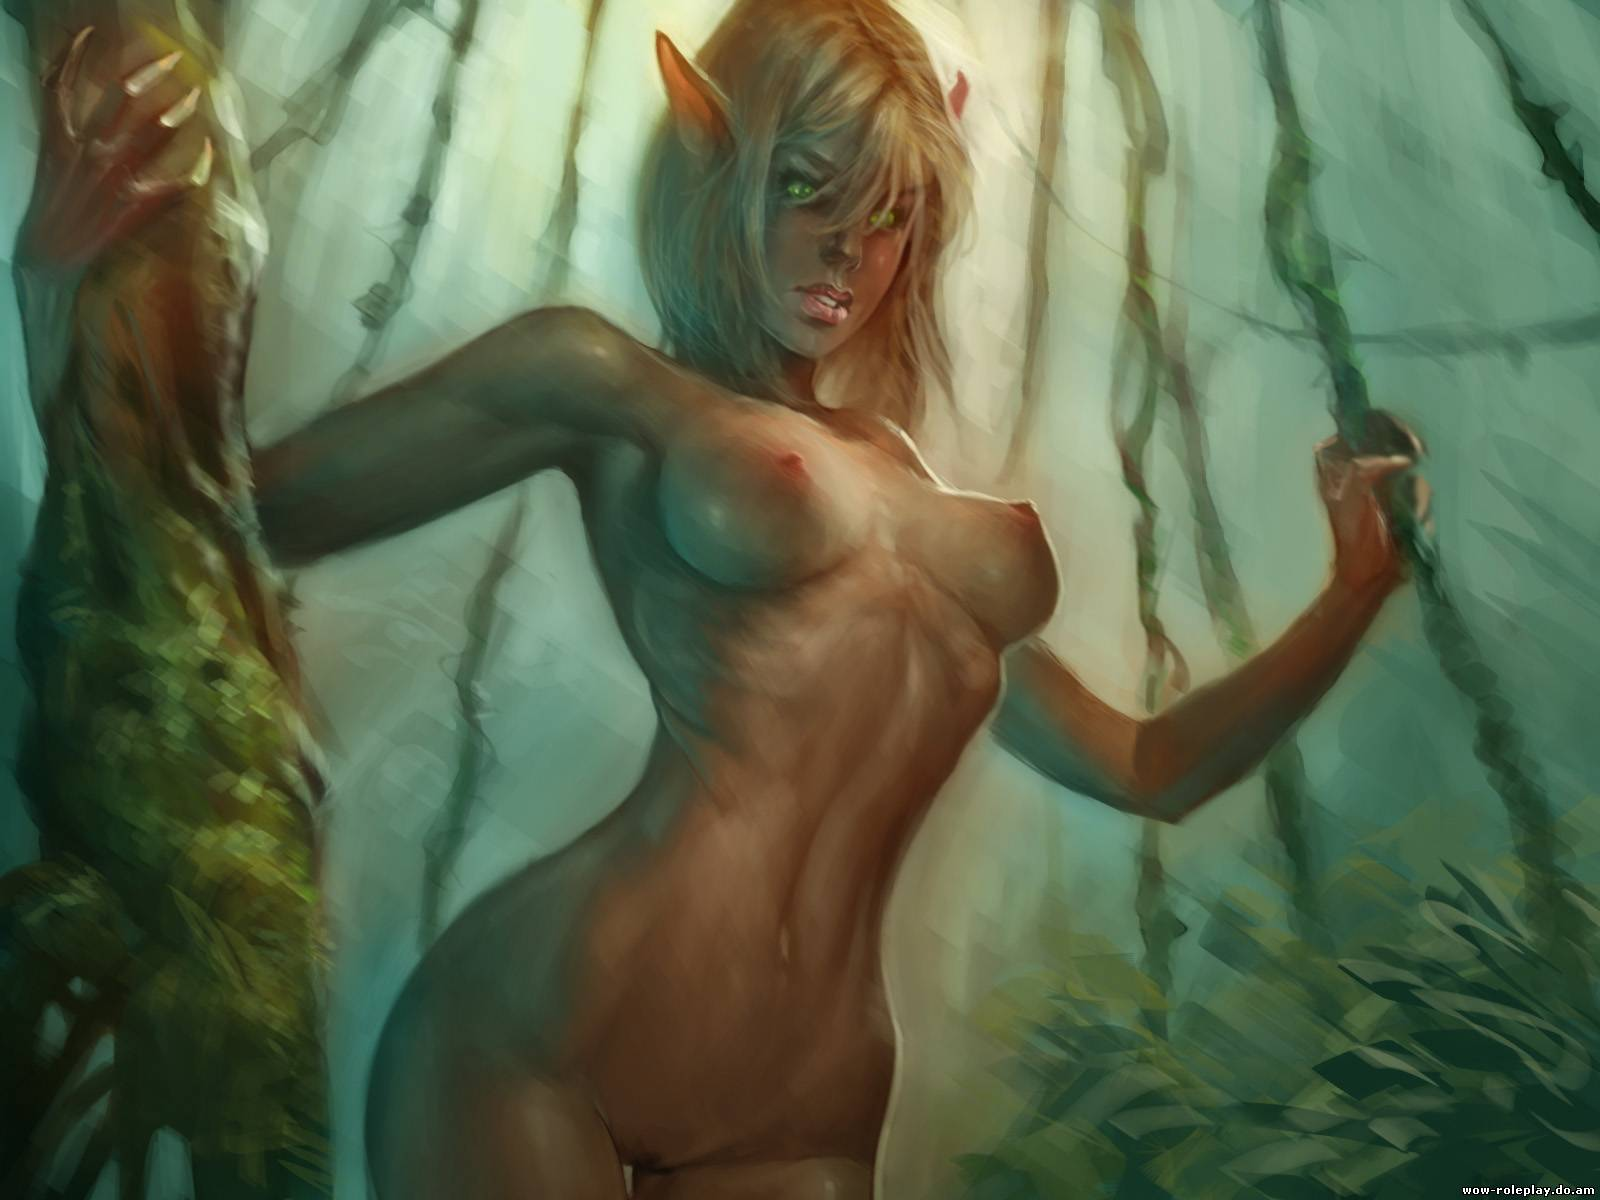 Elven fantasy adult art erotic movies